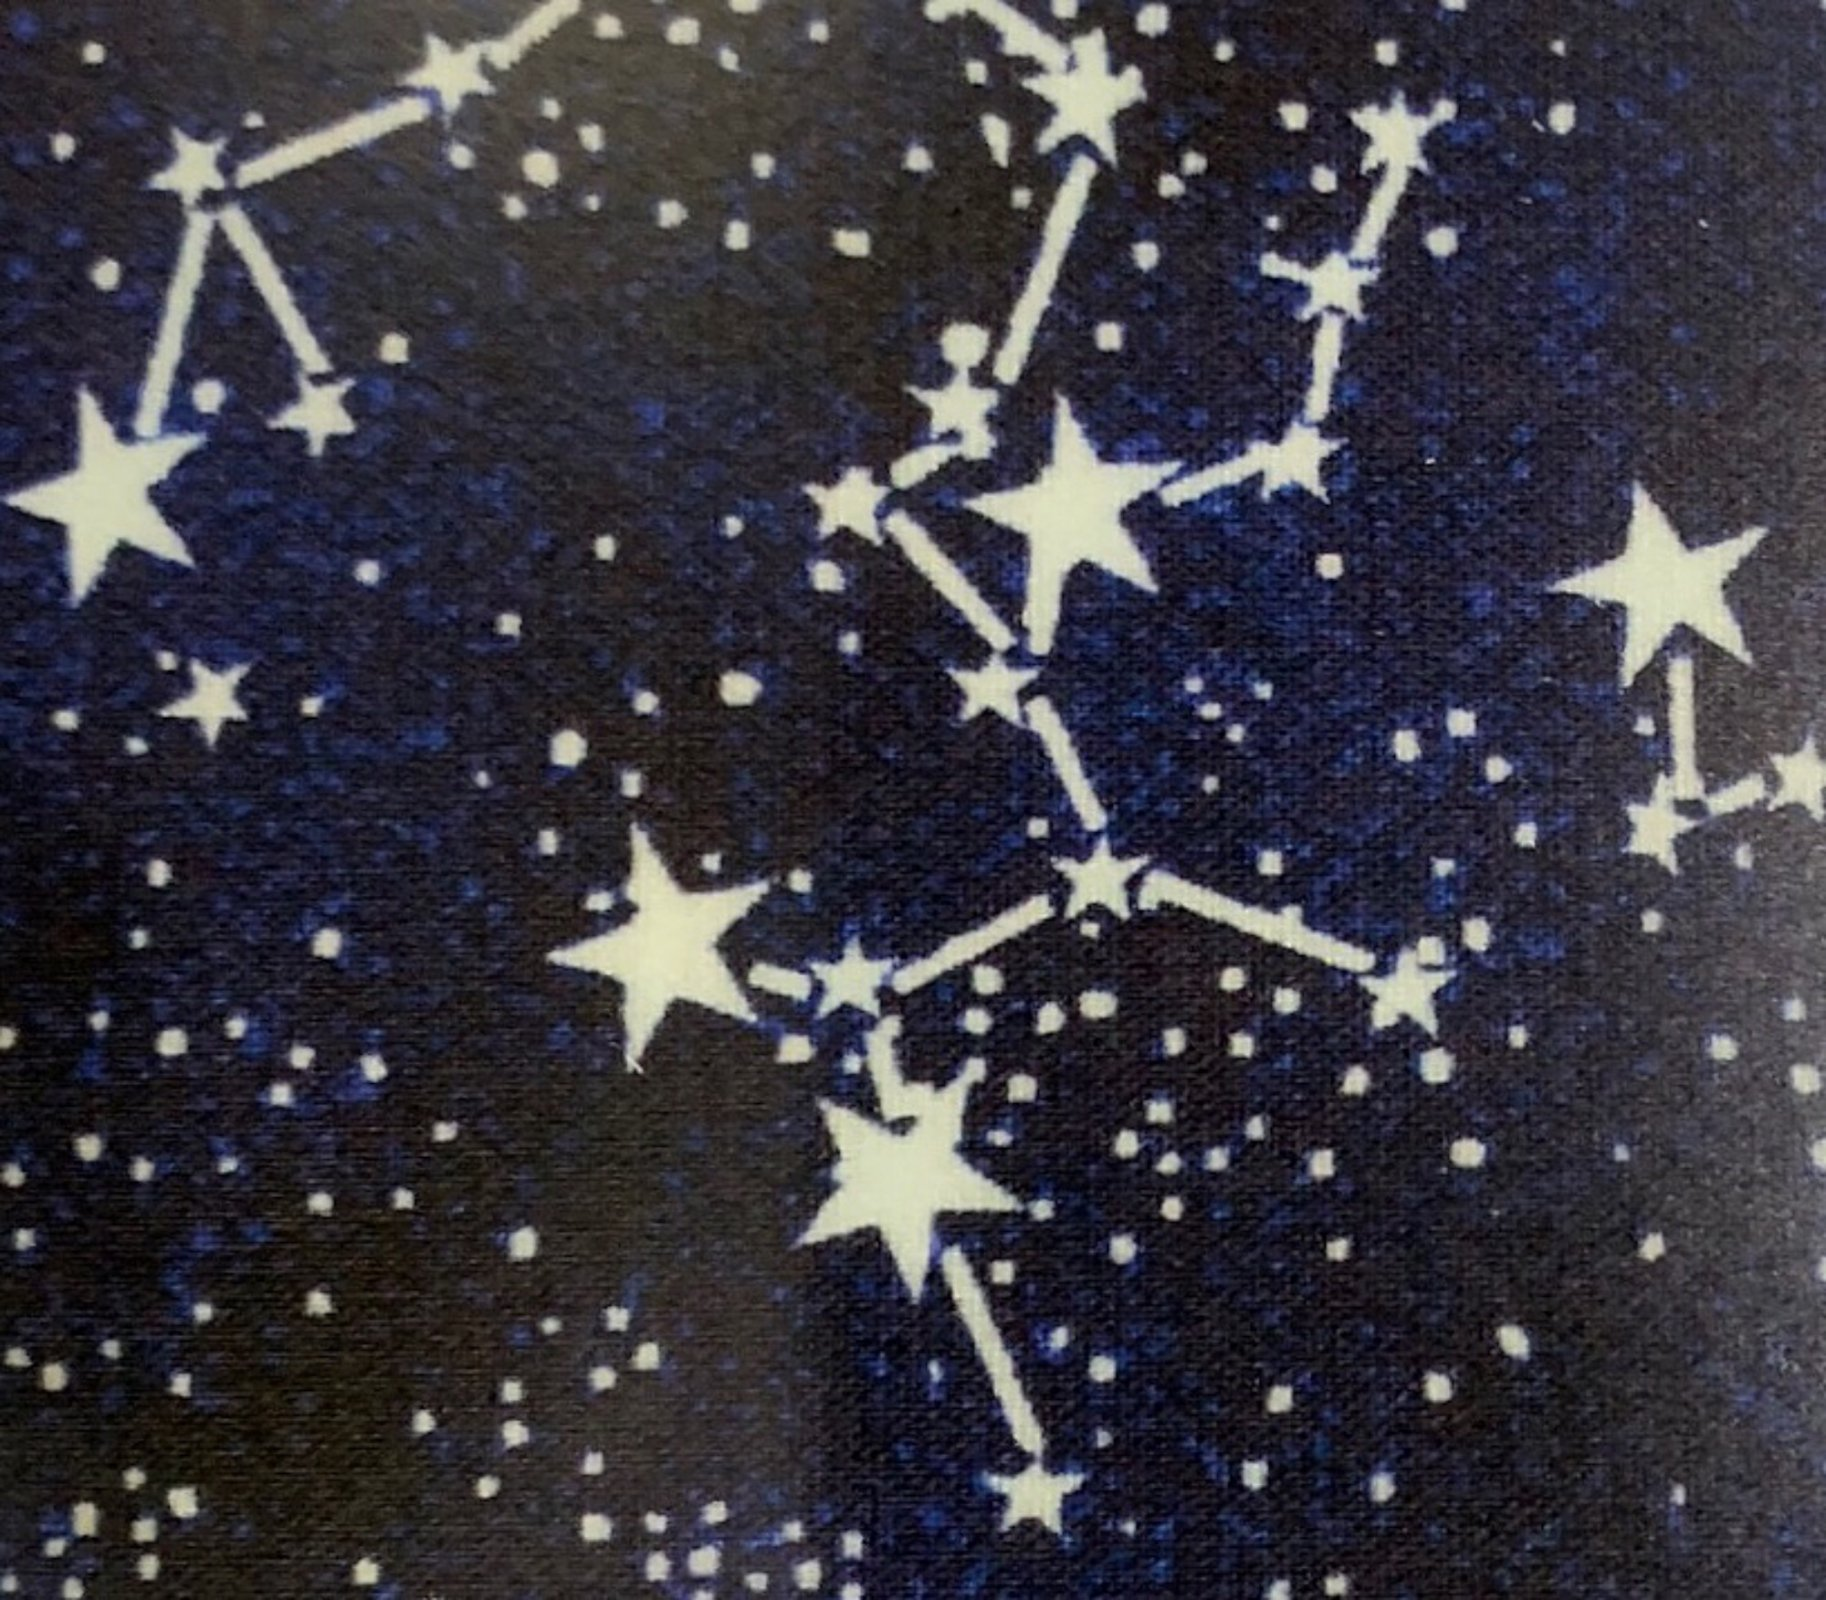 COMING SOON! Glow in the Dark Stars Galaxy Constellation Outer Space Cotton Quilt Fabric